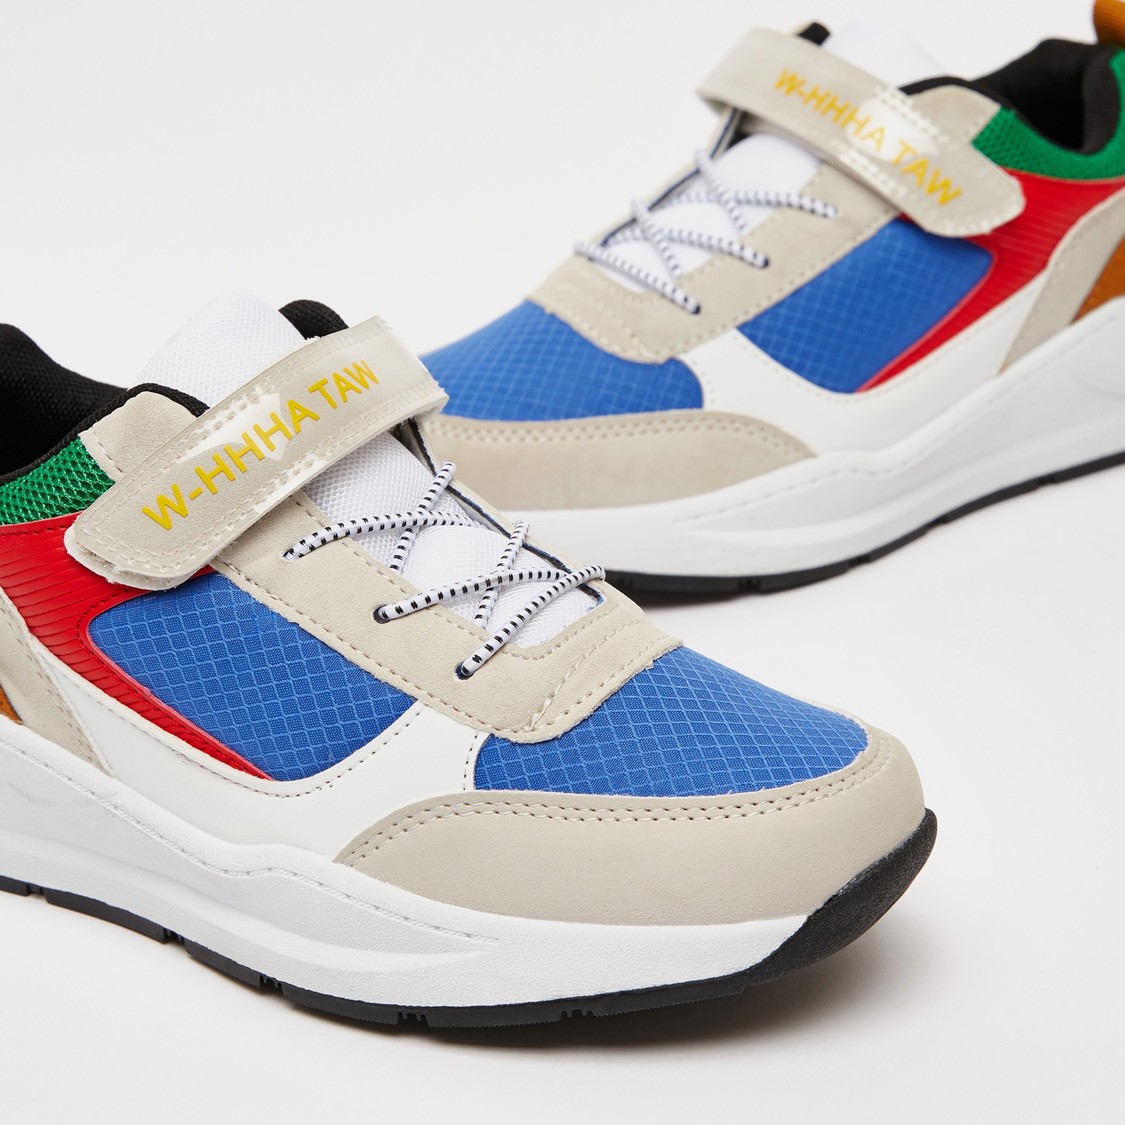 Panelled Sneakers with Hook and Loop Closure